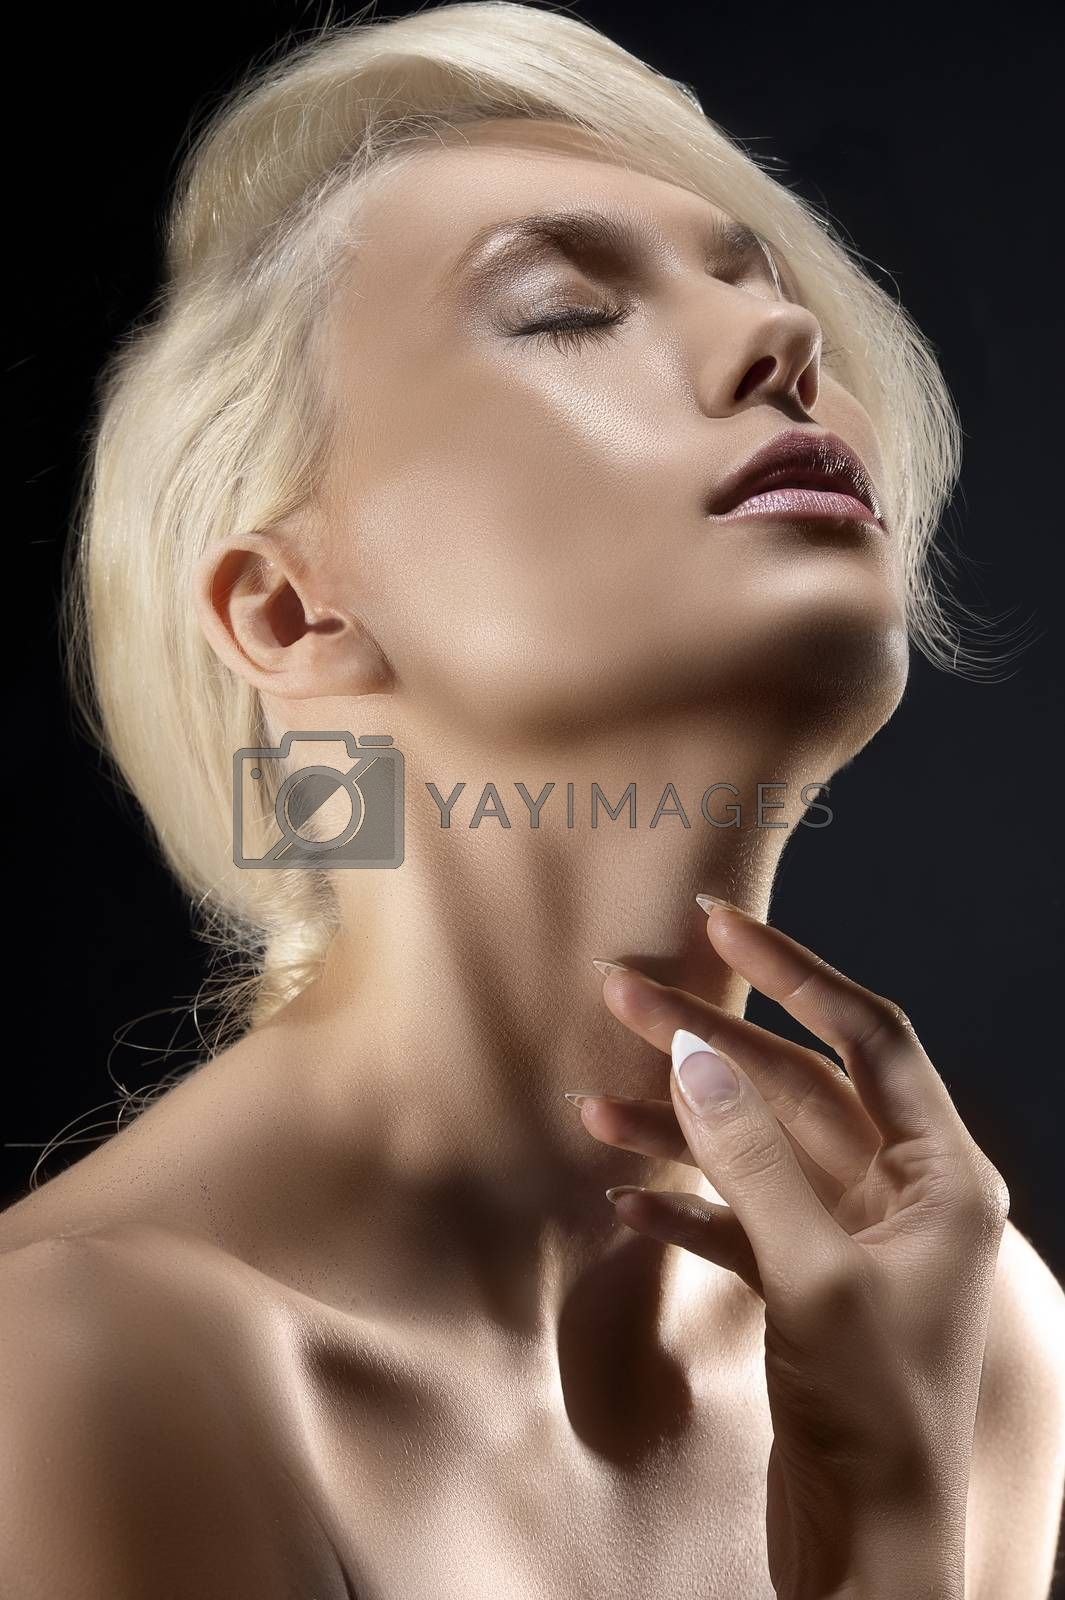 Royalty free image of blond young girl in emotive portrait by fotoCD